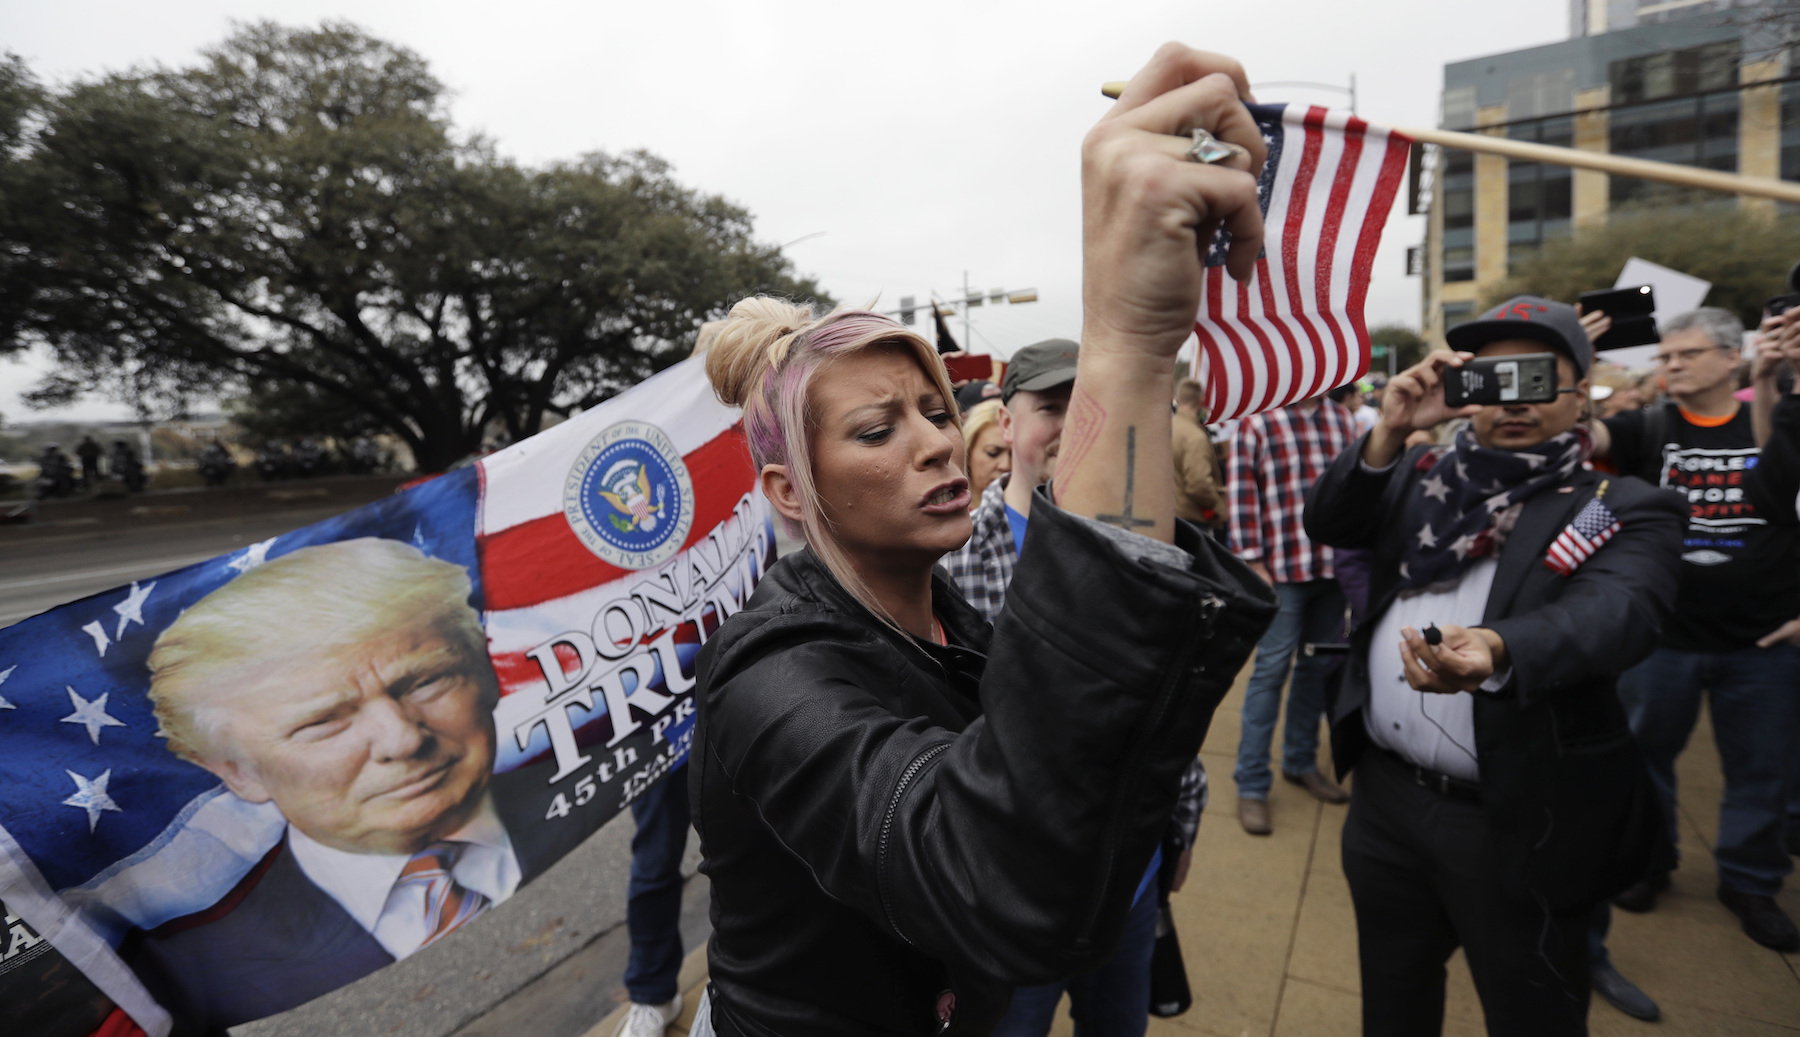 <div class='meta'><div class='origin-logo' data-origin='AP'></div><span class='caption-text' data-credit='AP Photo/Eric Gay'>A supporter of President Donald Trump argues with others at a rally before a women's march, Saturday, Jan. 20, 2018, in Austin, Texas.</span></div>